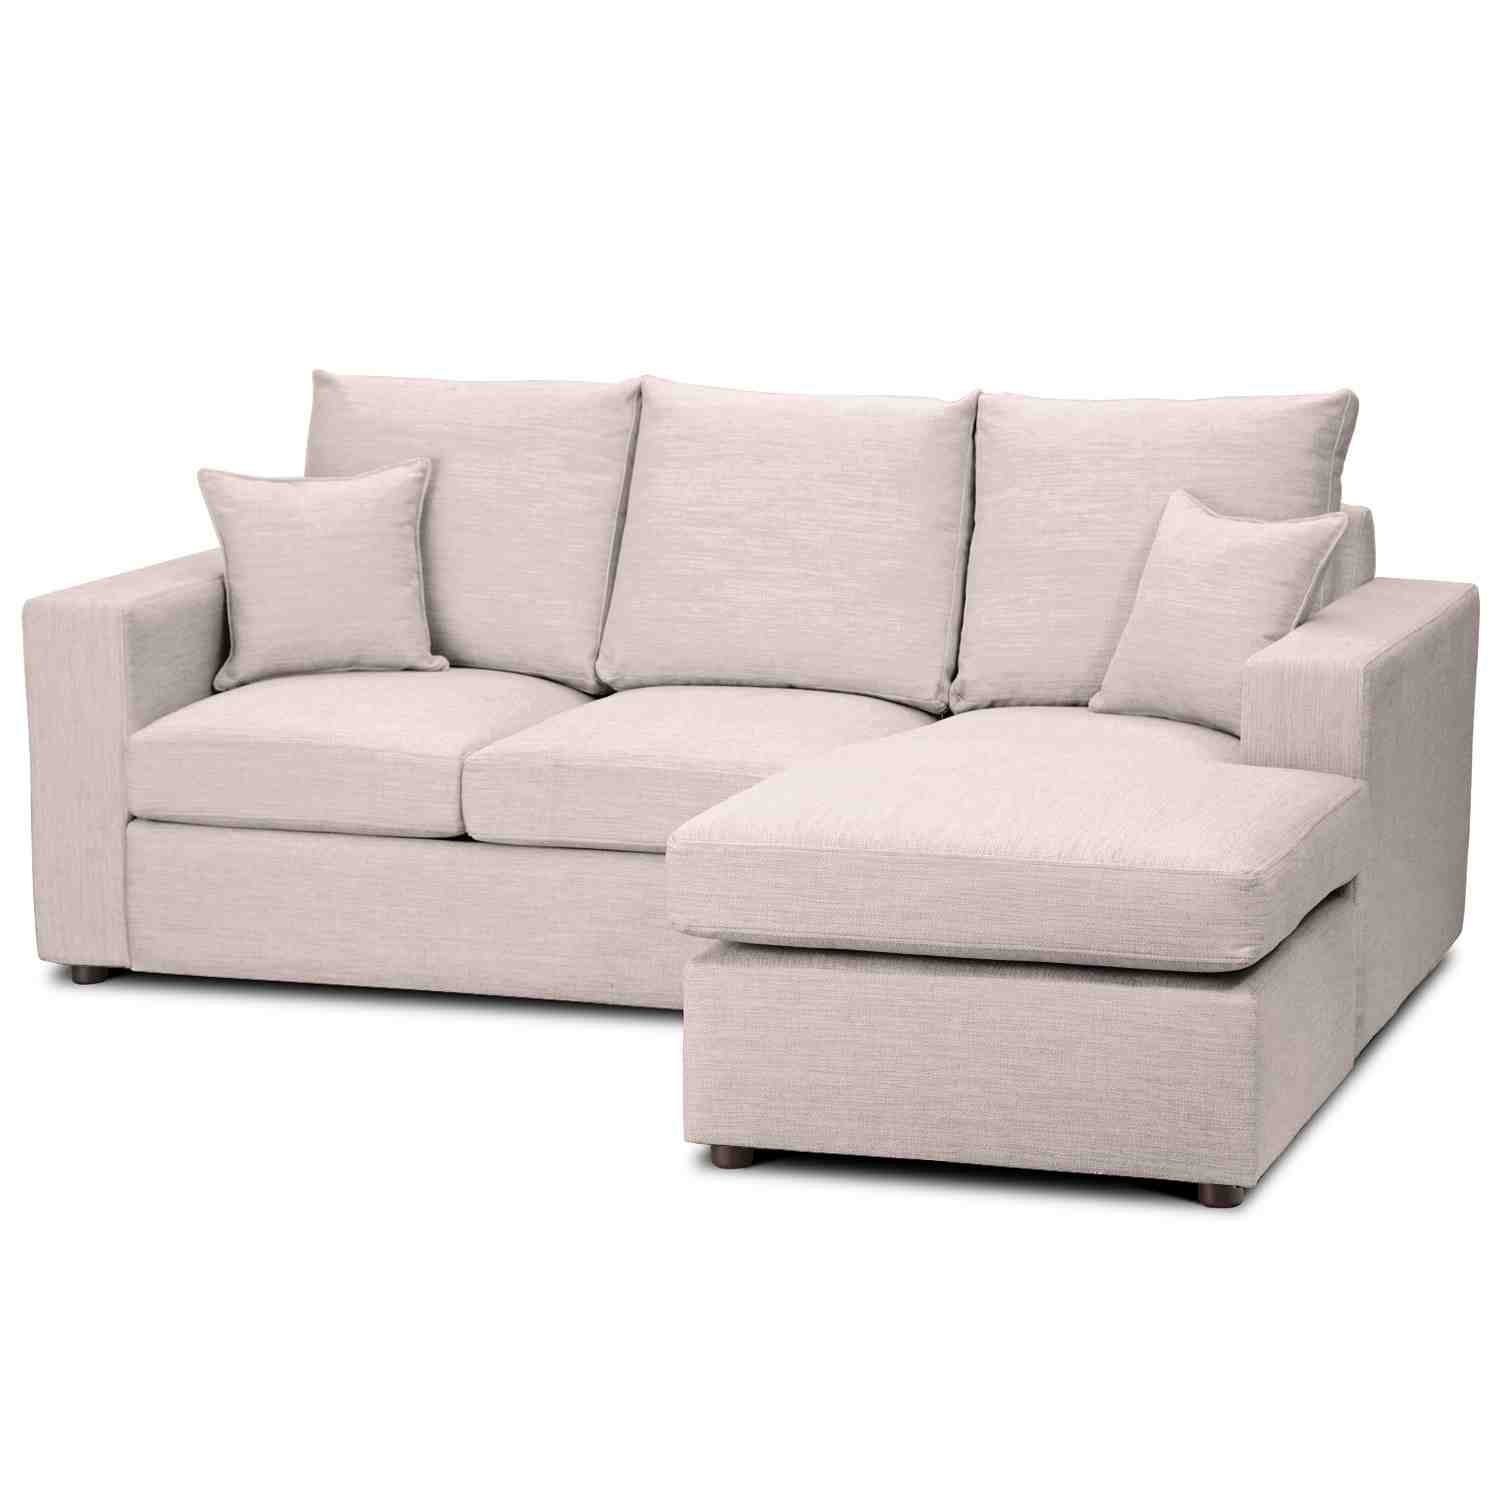 3 seater corner sofa decor ideasdecor ideas for 3 seater sofa